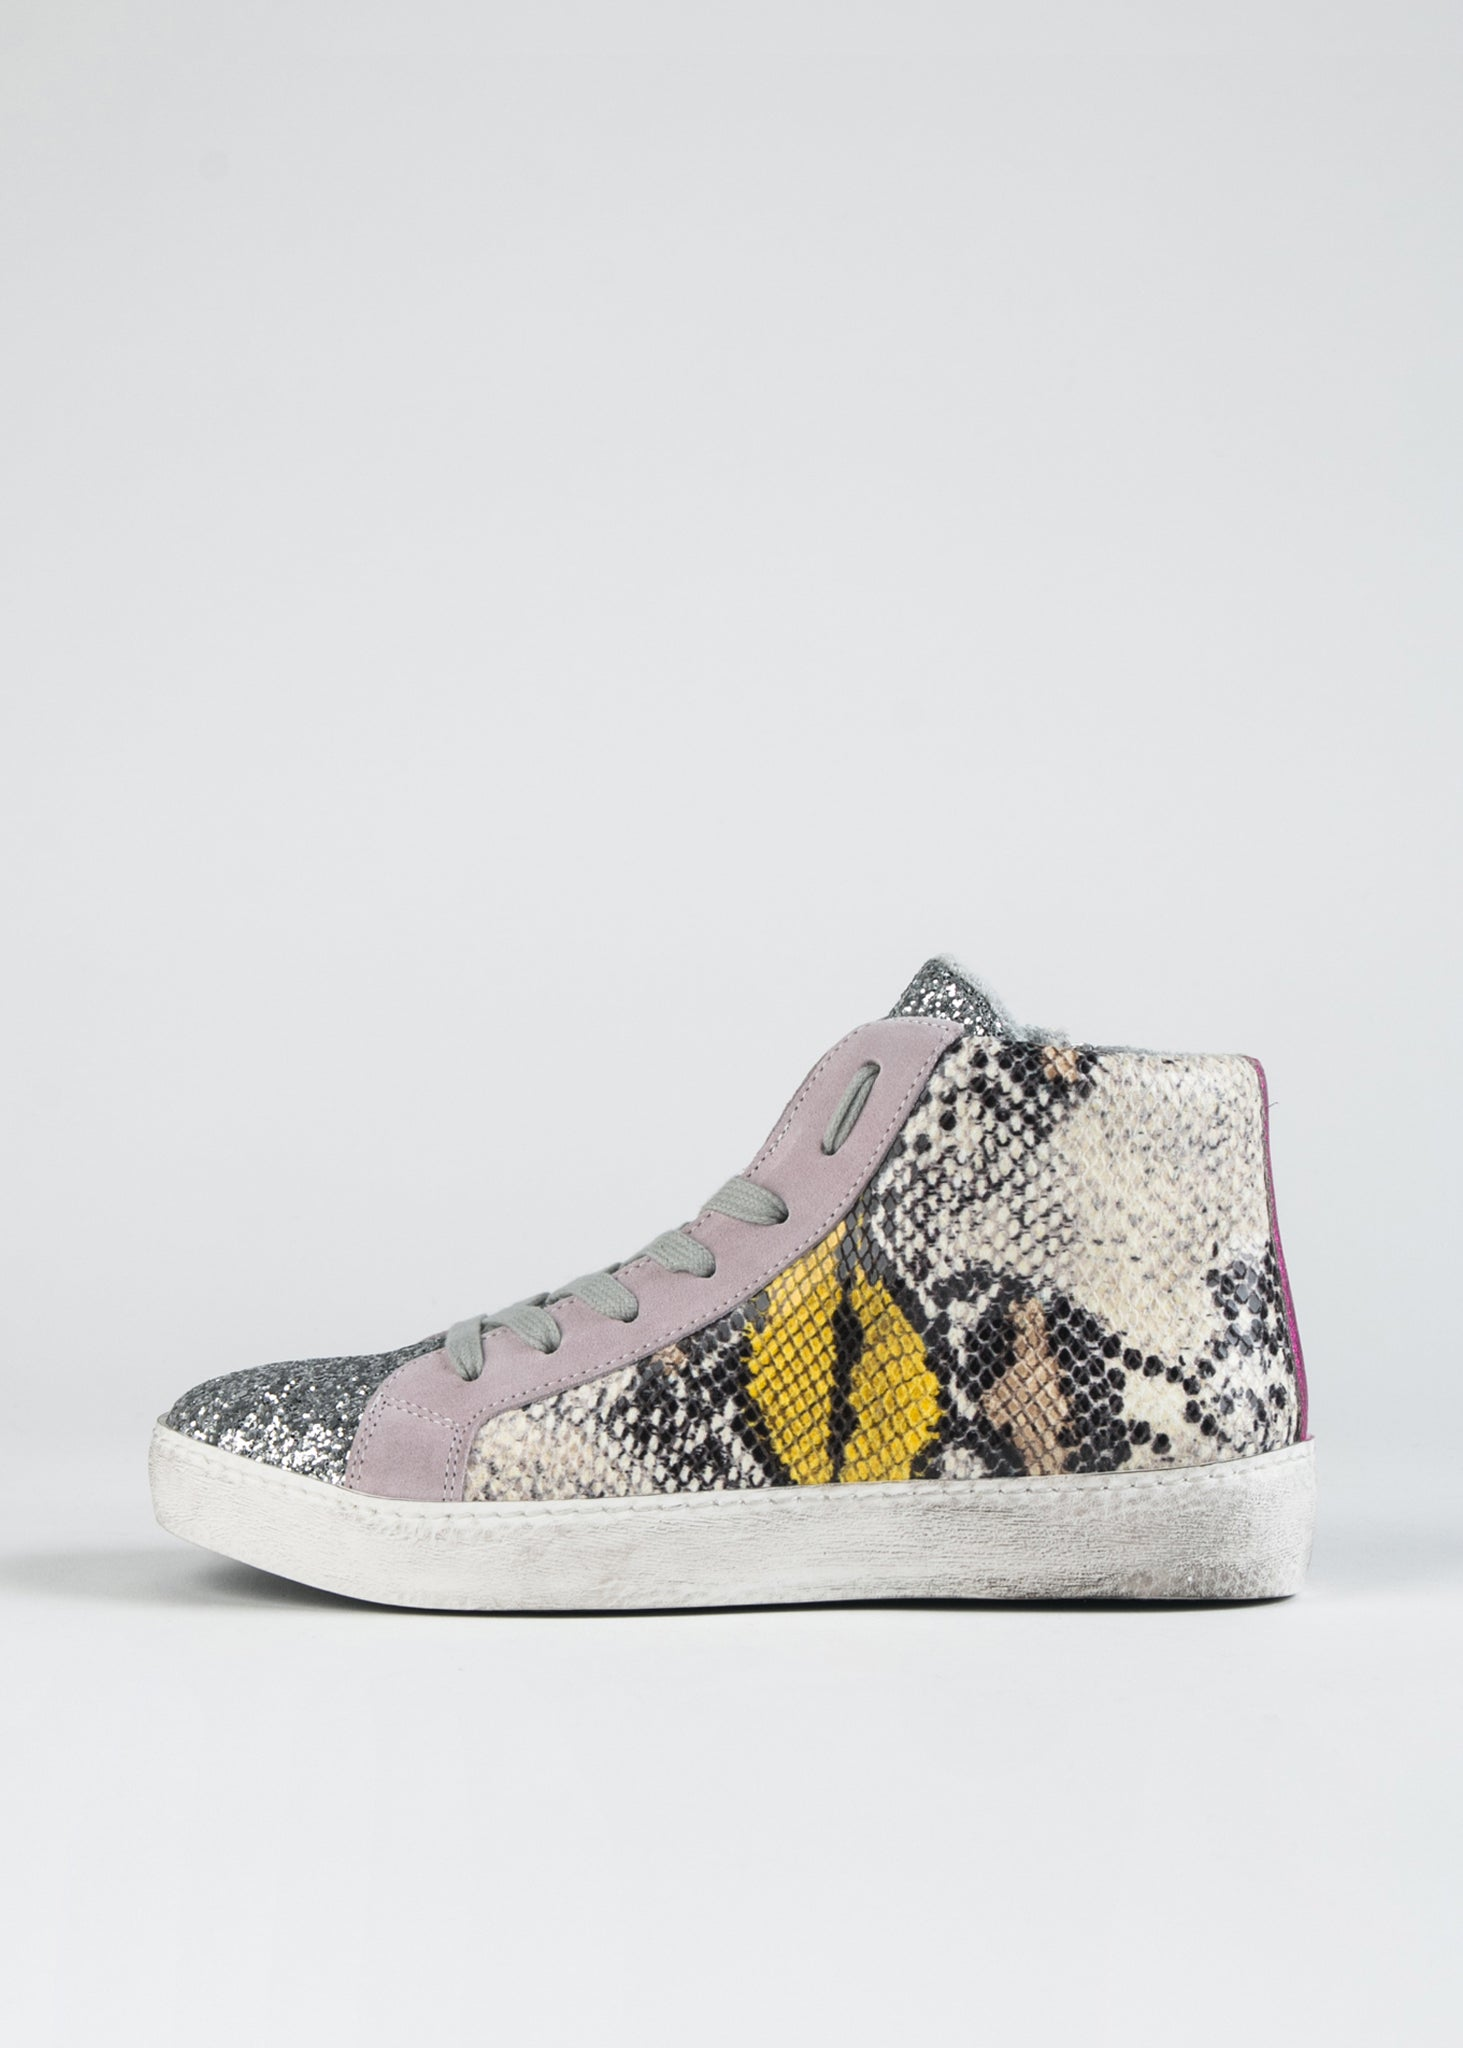 DISTRESSED SNAKESKIN AND GLITTER HIGH TOP SNEAKER